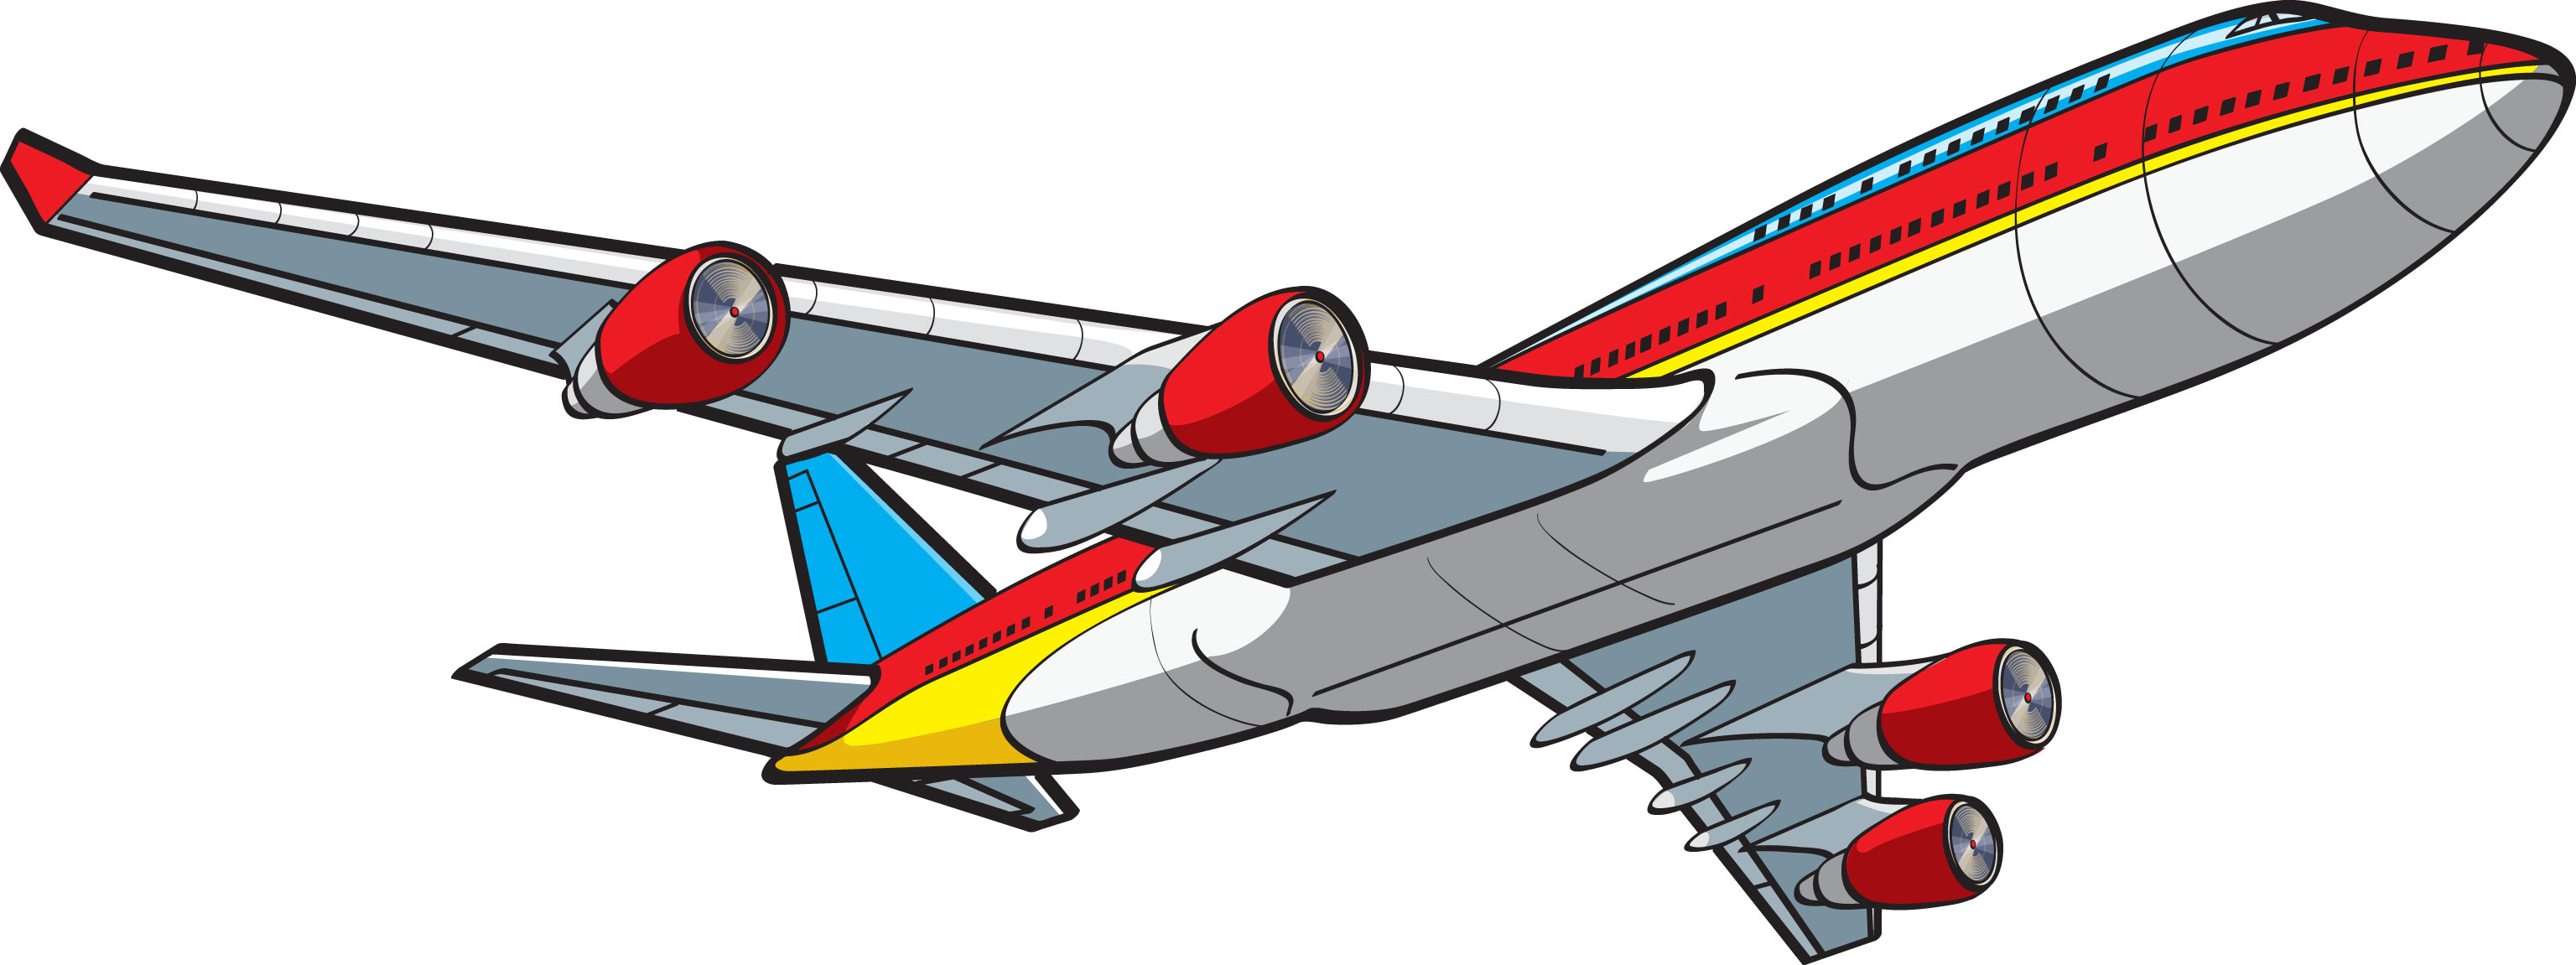 3072x1151 Airplane Clipart Toy Plane